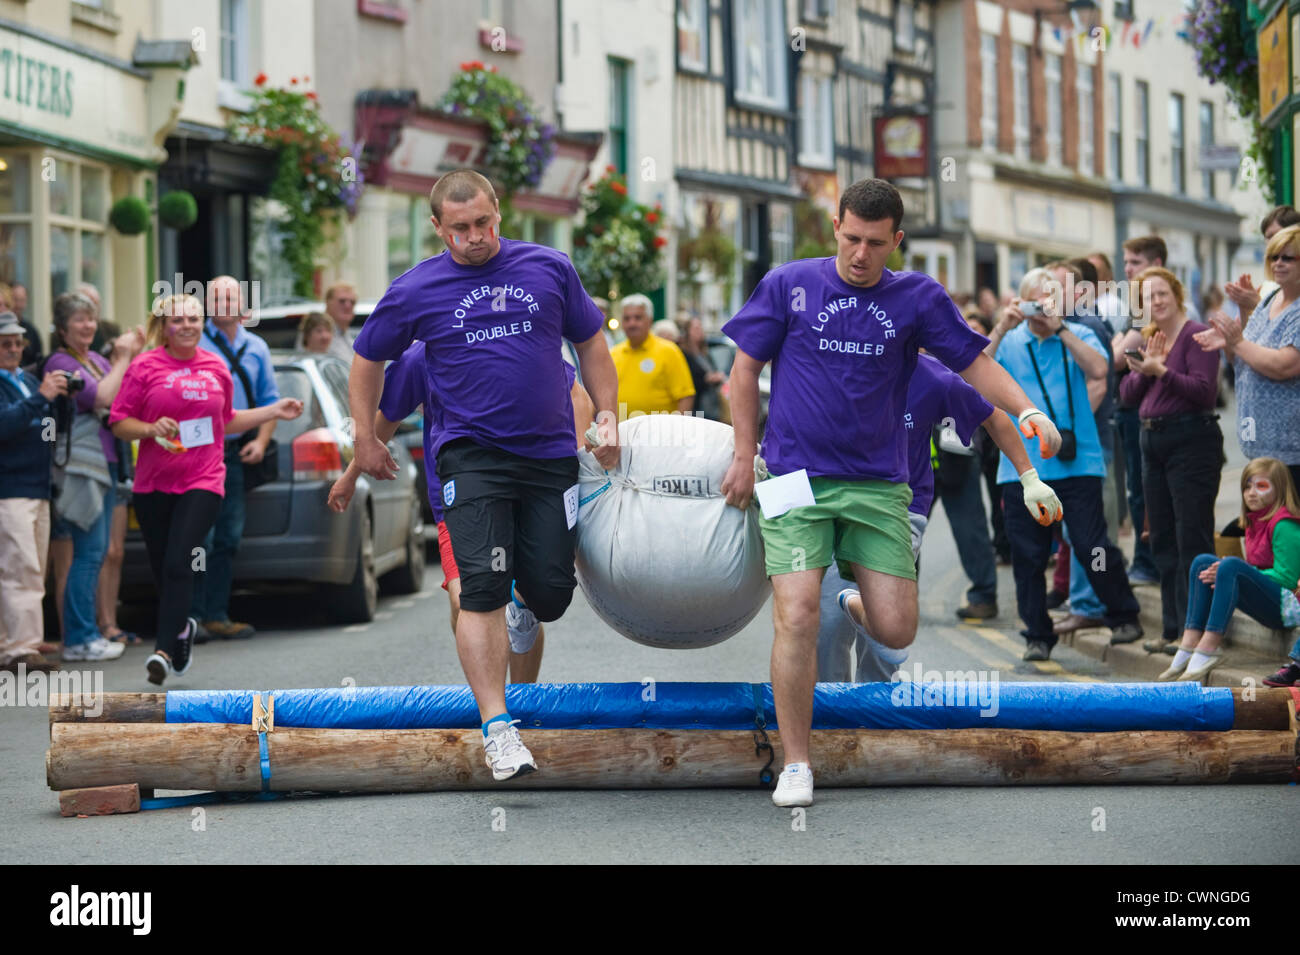 East European men's team jump the hurdle in the annual World Championship Hop Pocket Race at Bromyard Herefordshire - Stock Image